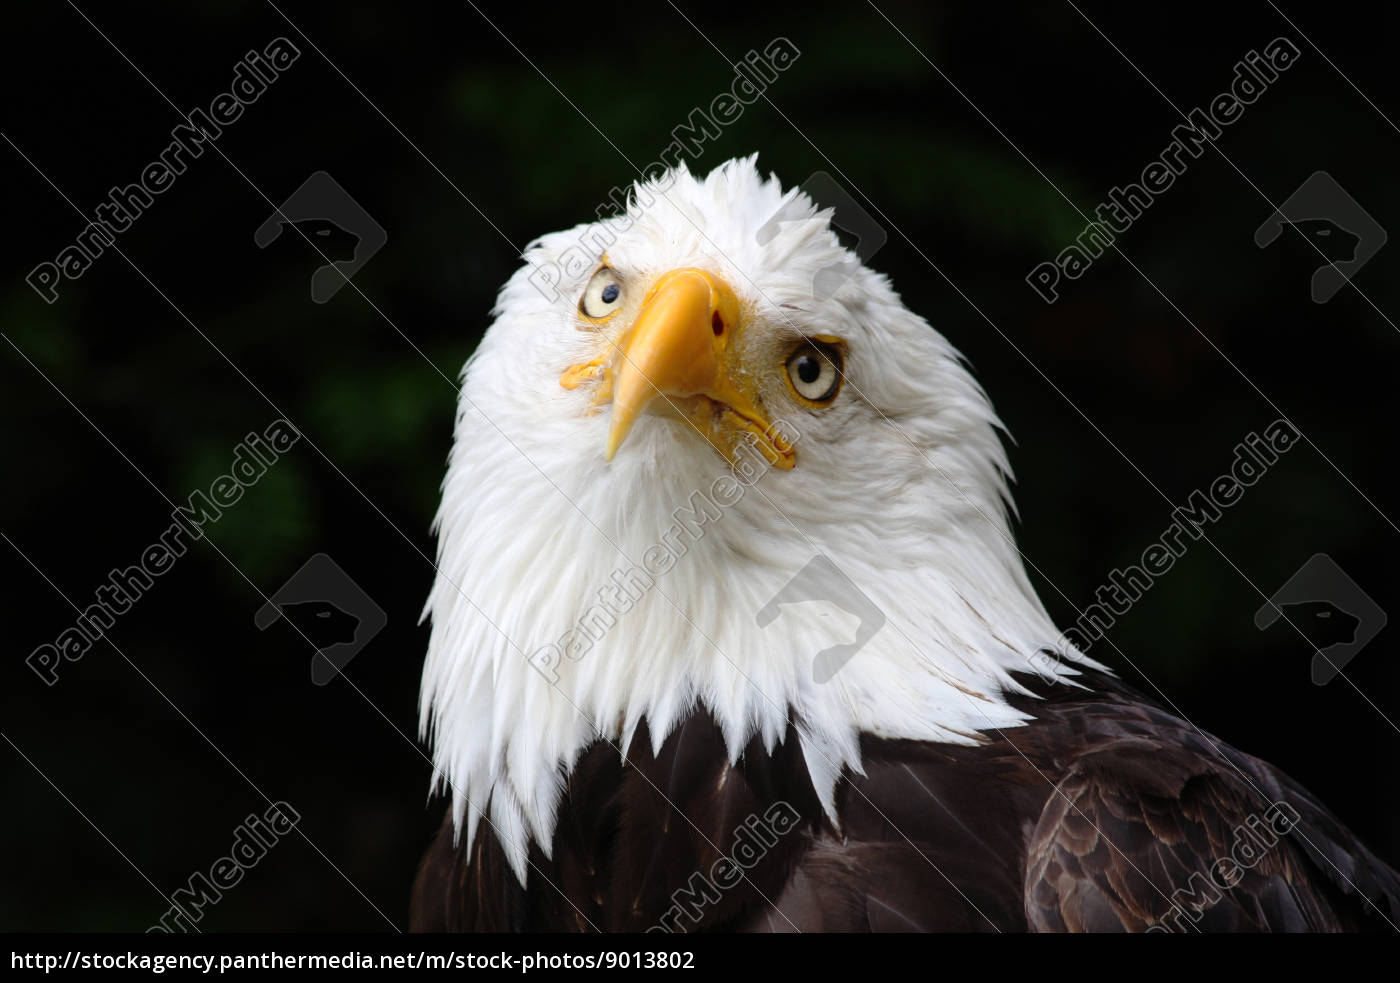 bird, birds, eyes, raptor, feathers, beak - 9013802